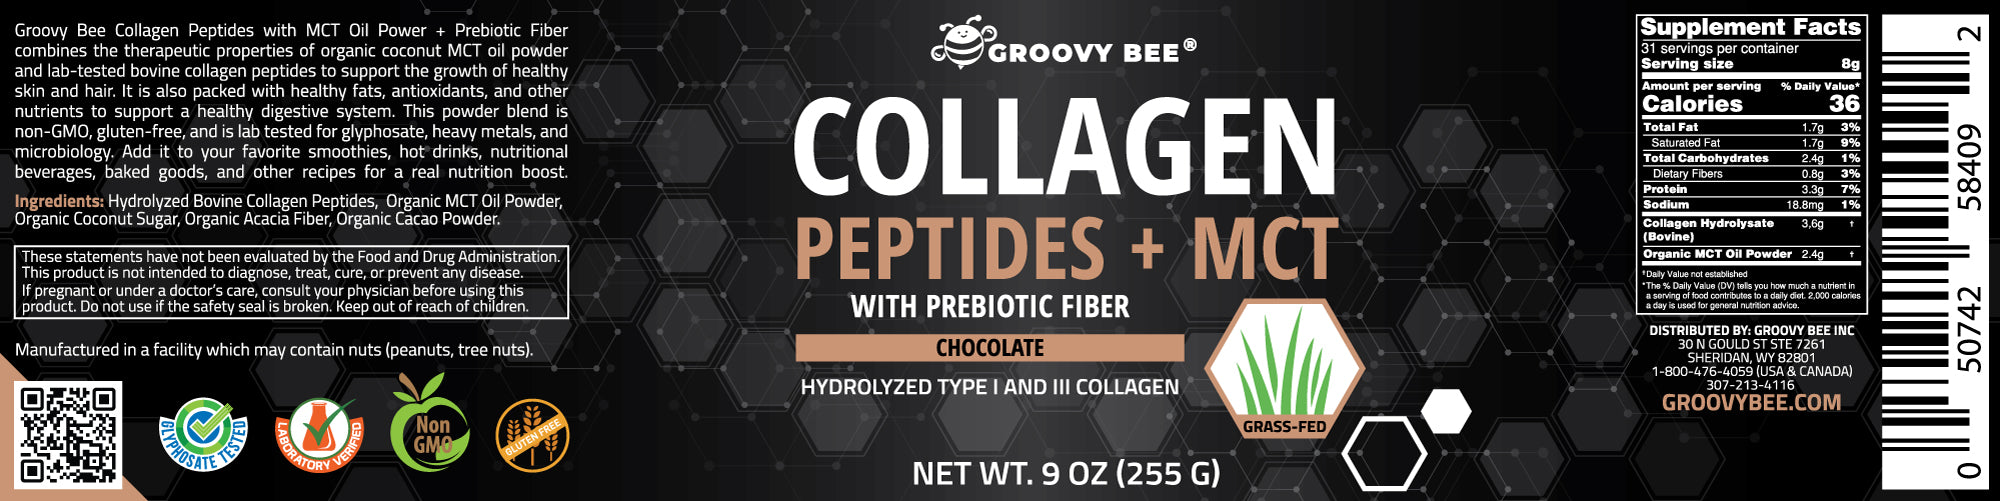 Groovy Bee® Collagen Peptides + MCT with Prebiotic Fiber - Chocolate 9 oz (255g) (3-Pack)